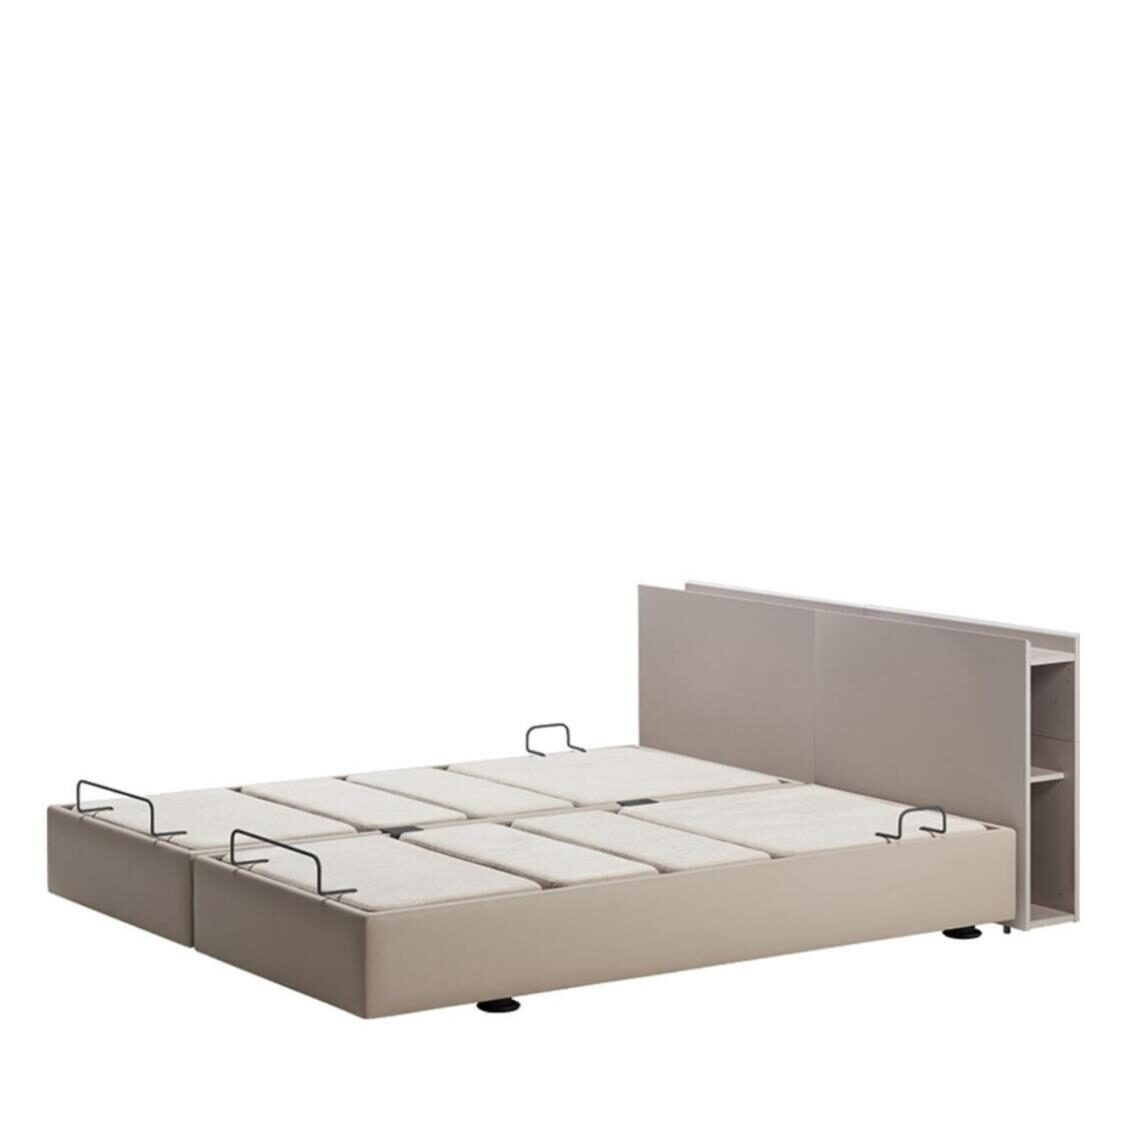 Argian 1800W Twin Motion Bed With USB King GYM Grey Matt